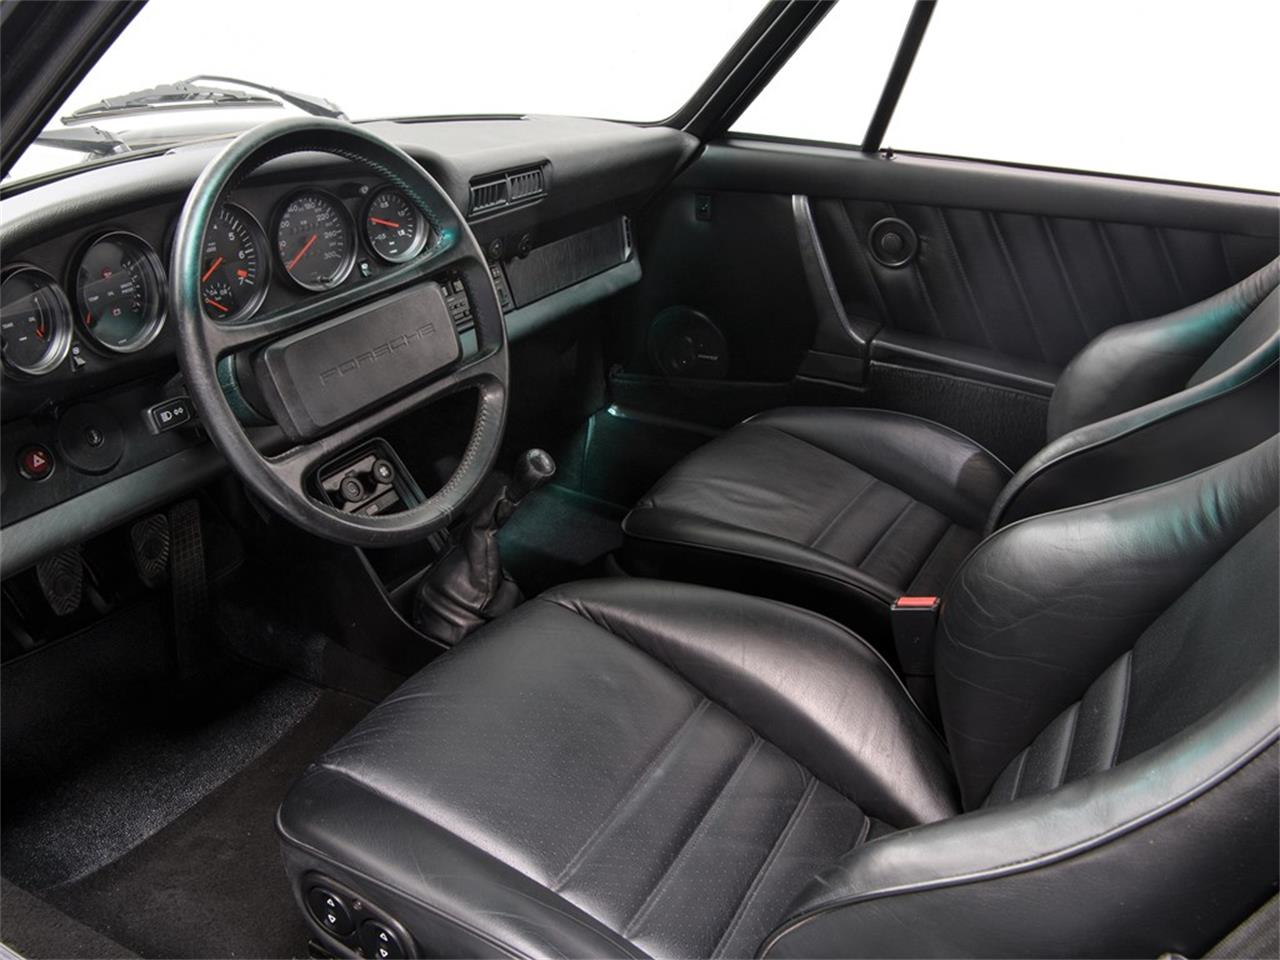 1985 Porsche 911 Turbo (CC-1319555) for sale in Essen, Germany